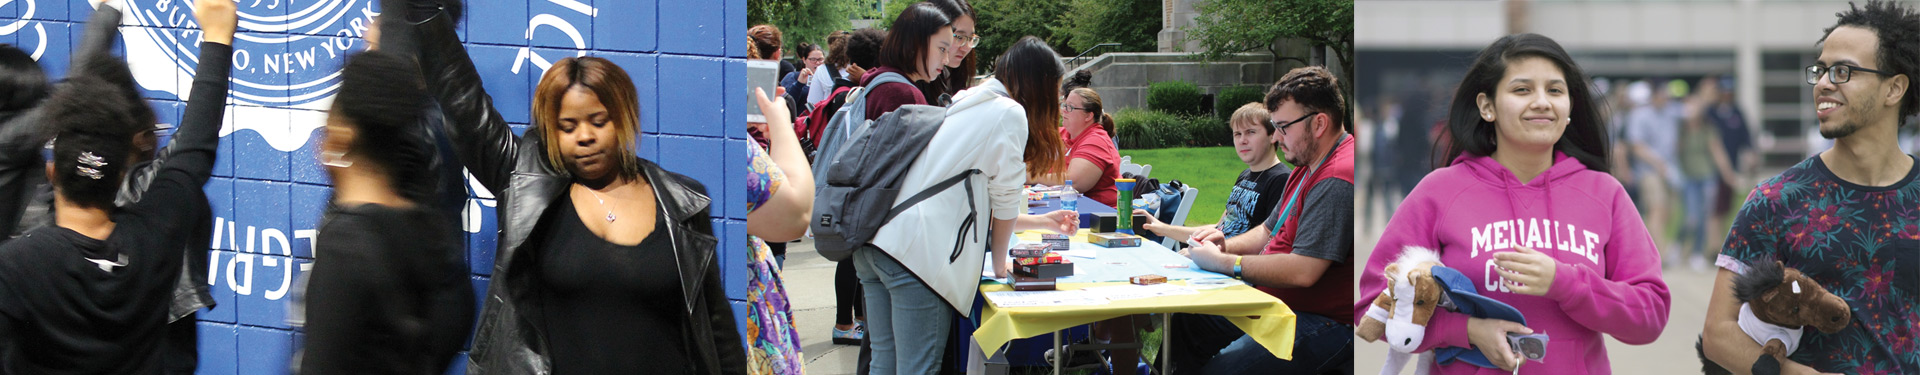 Student Clubs and Activities at Medaille College